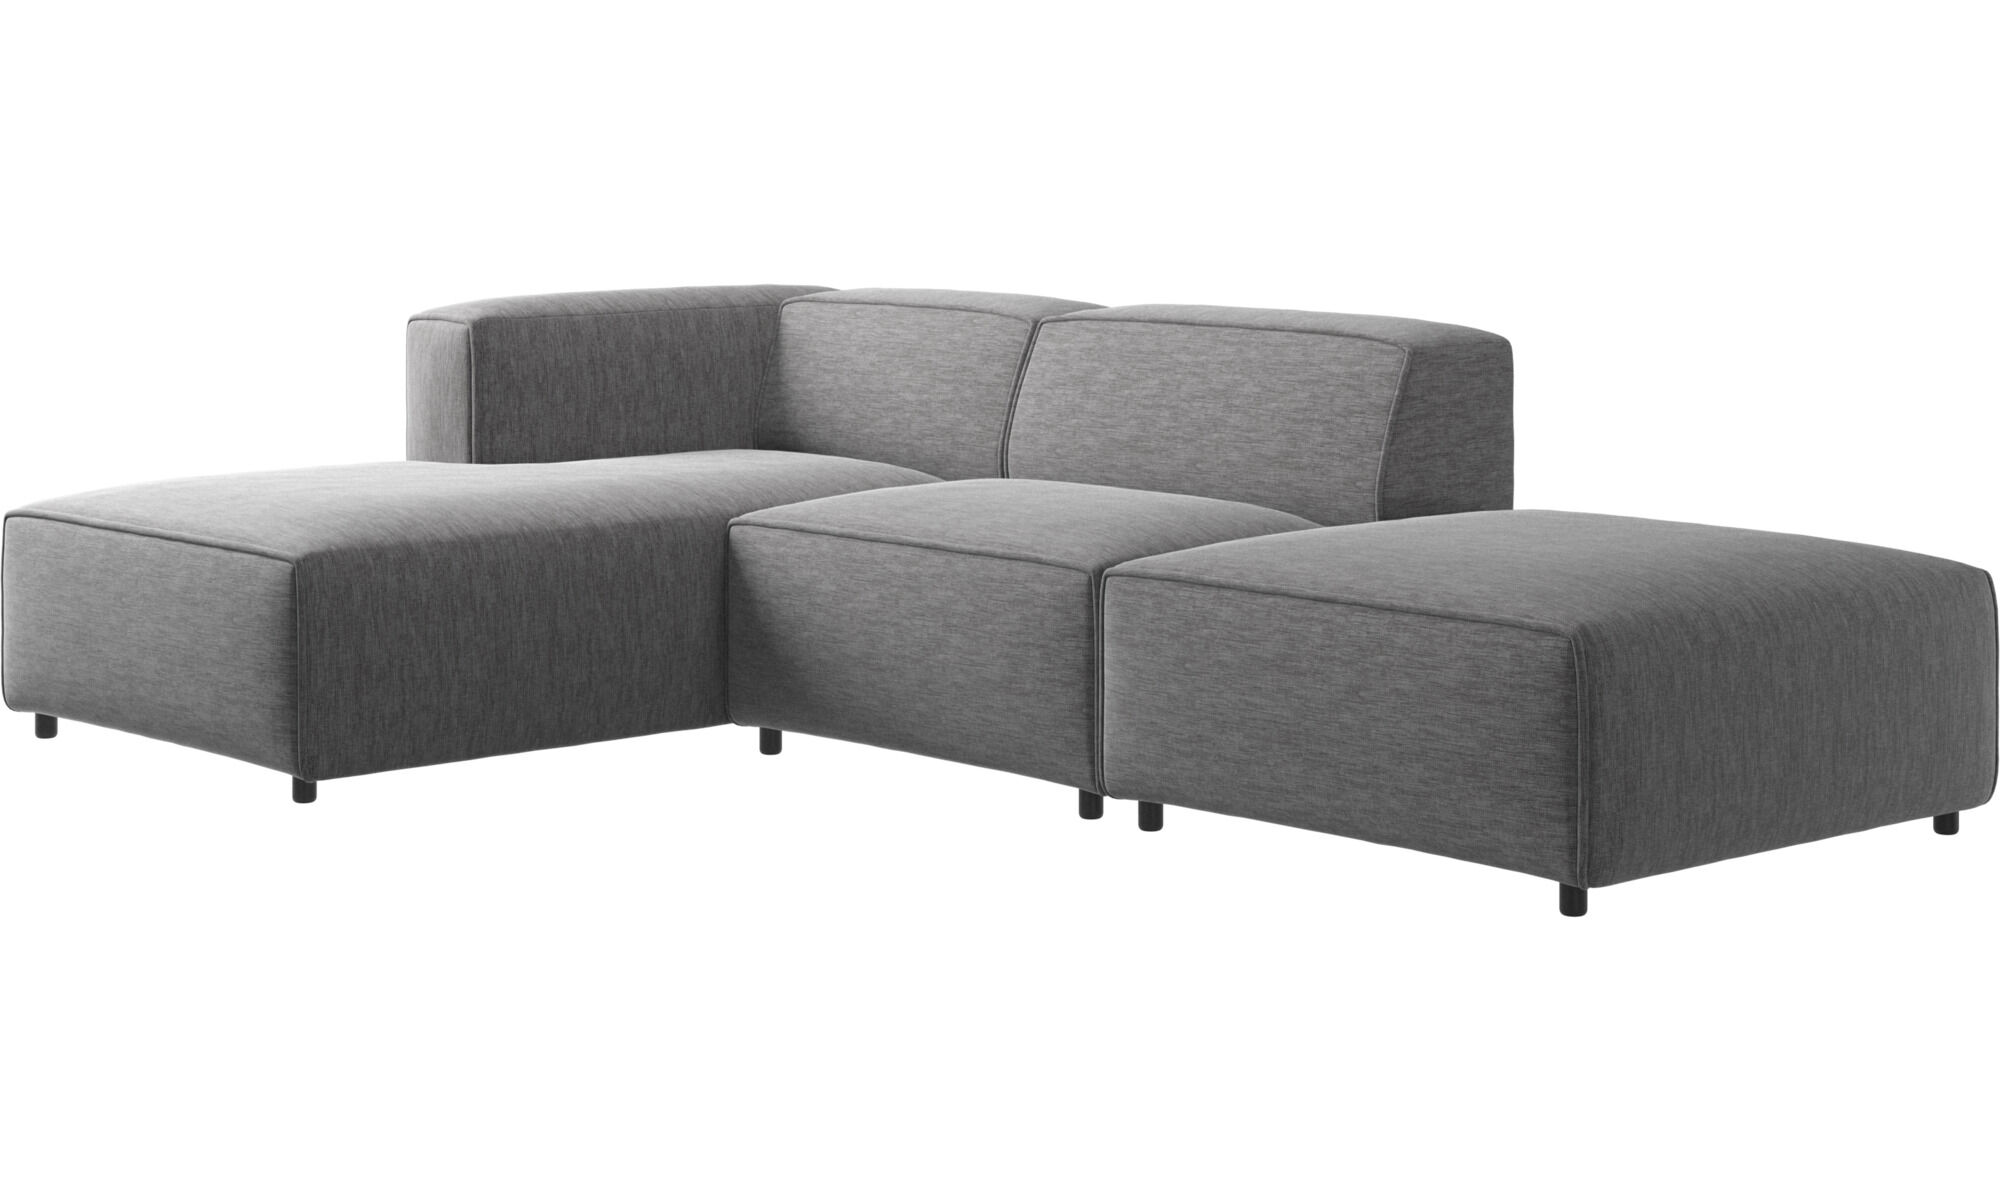 ... Chaise Lounge Sofas   Carmo Sofa With Lounging And Resting Unit   Gray    Fabric ...